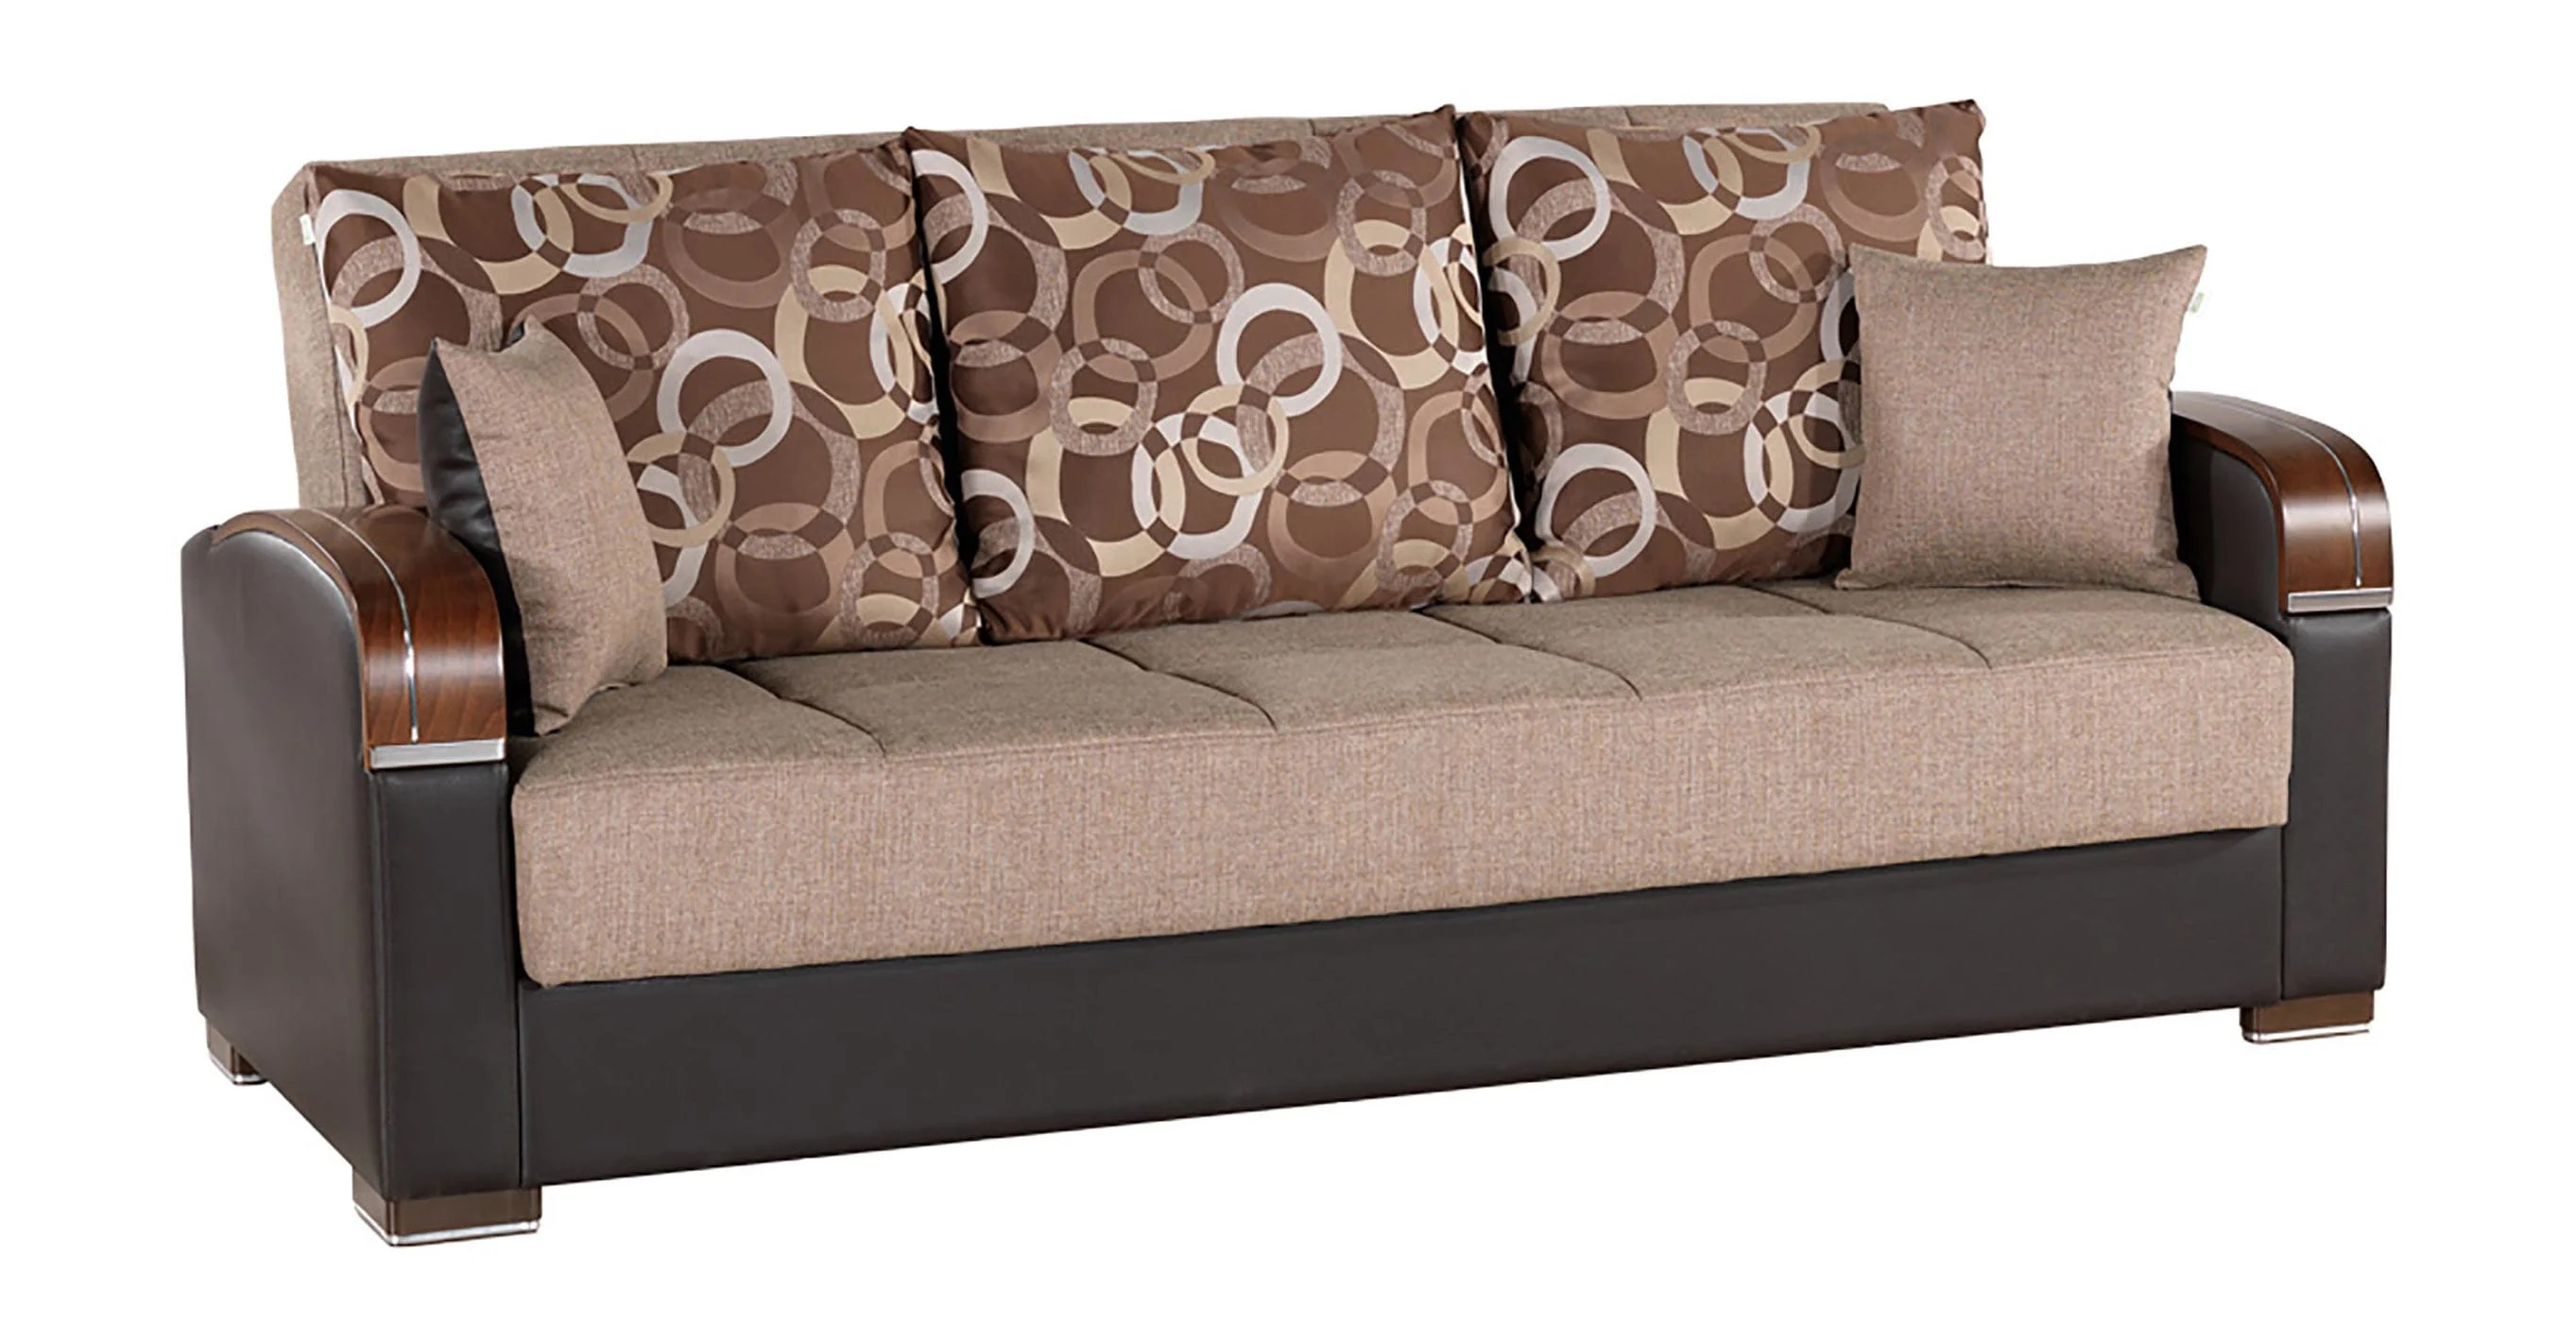 Sofa Beds Amsterdam Mobimax Brown Convertible Sofa Bed By Casamode